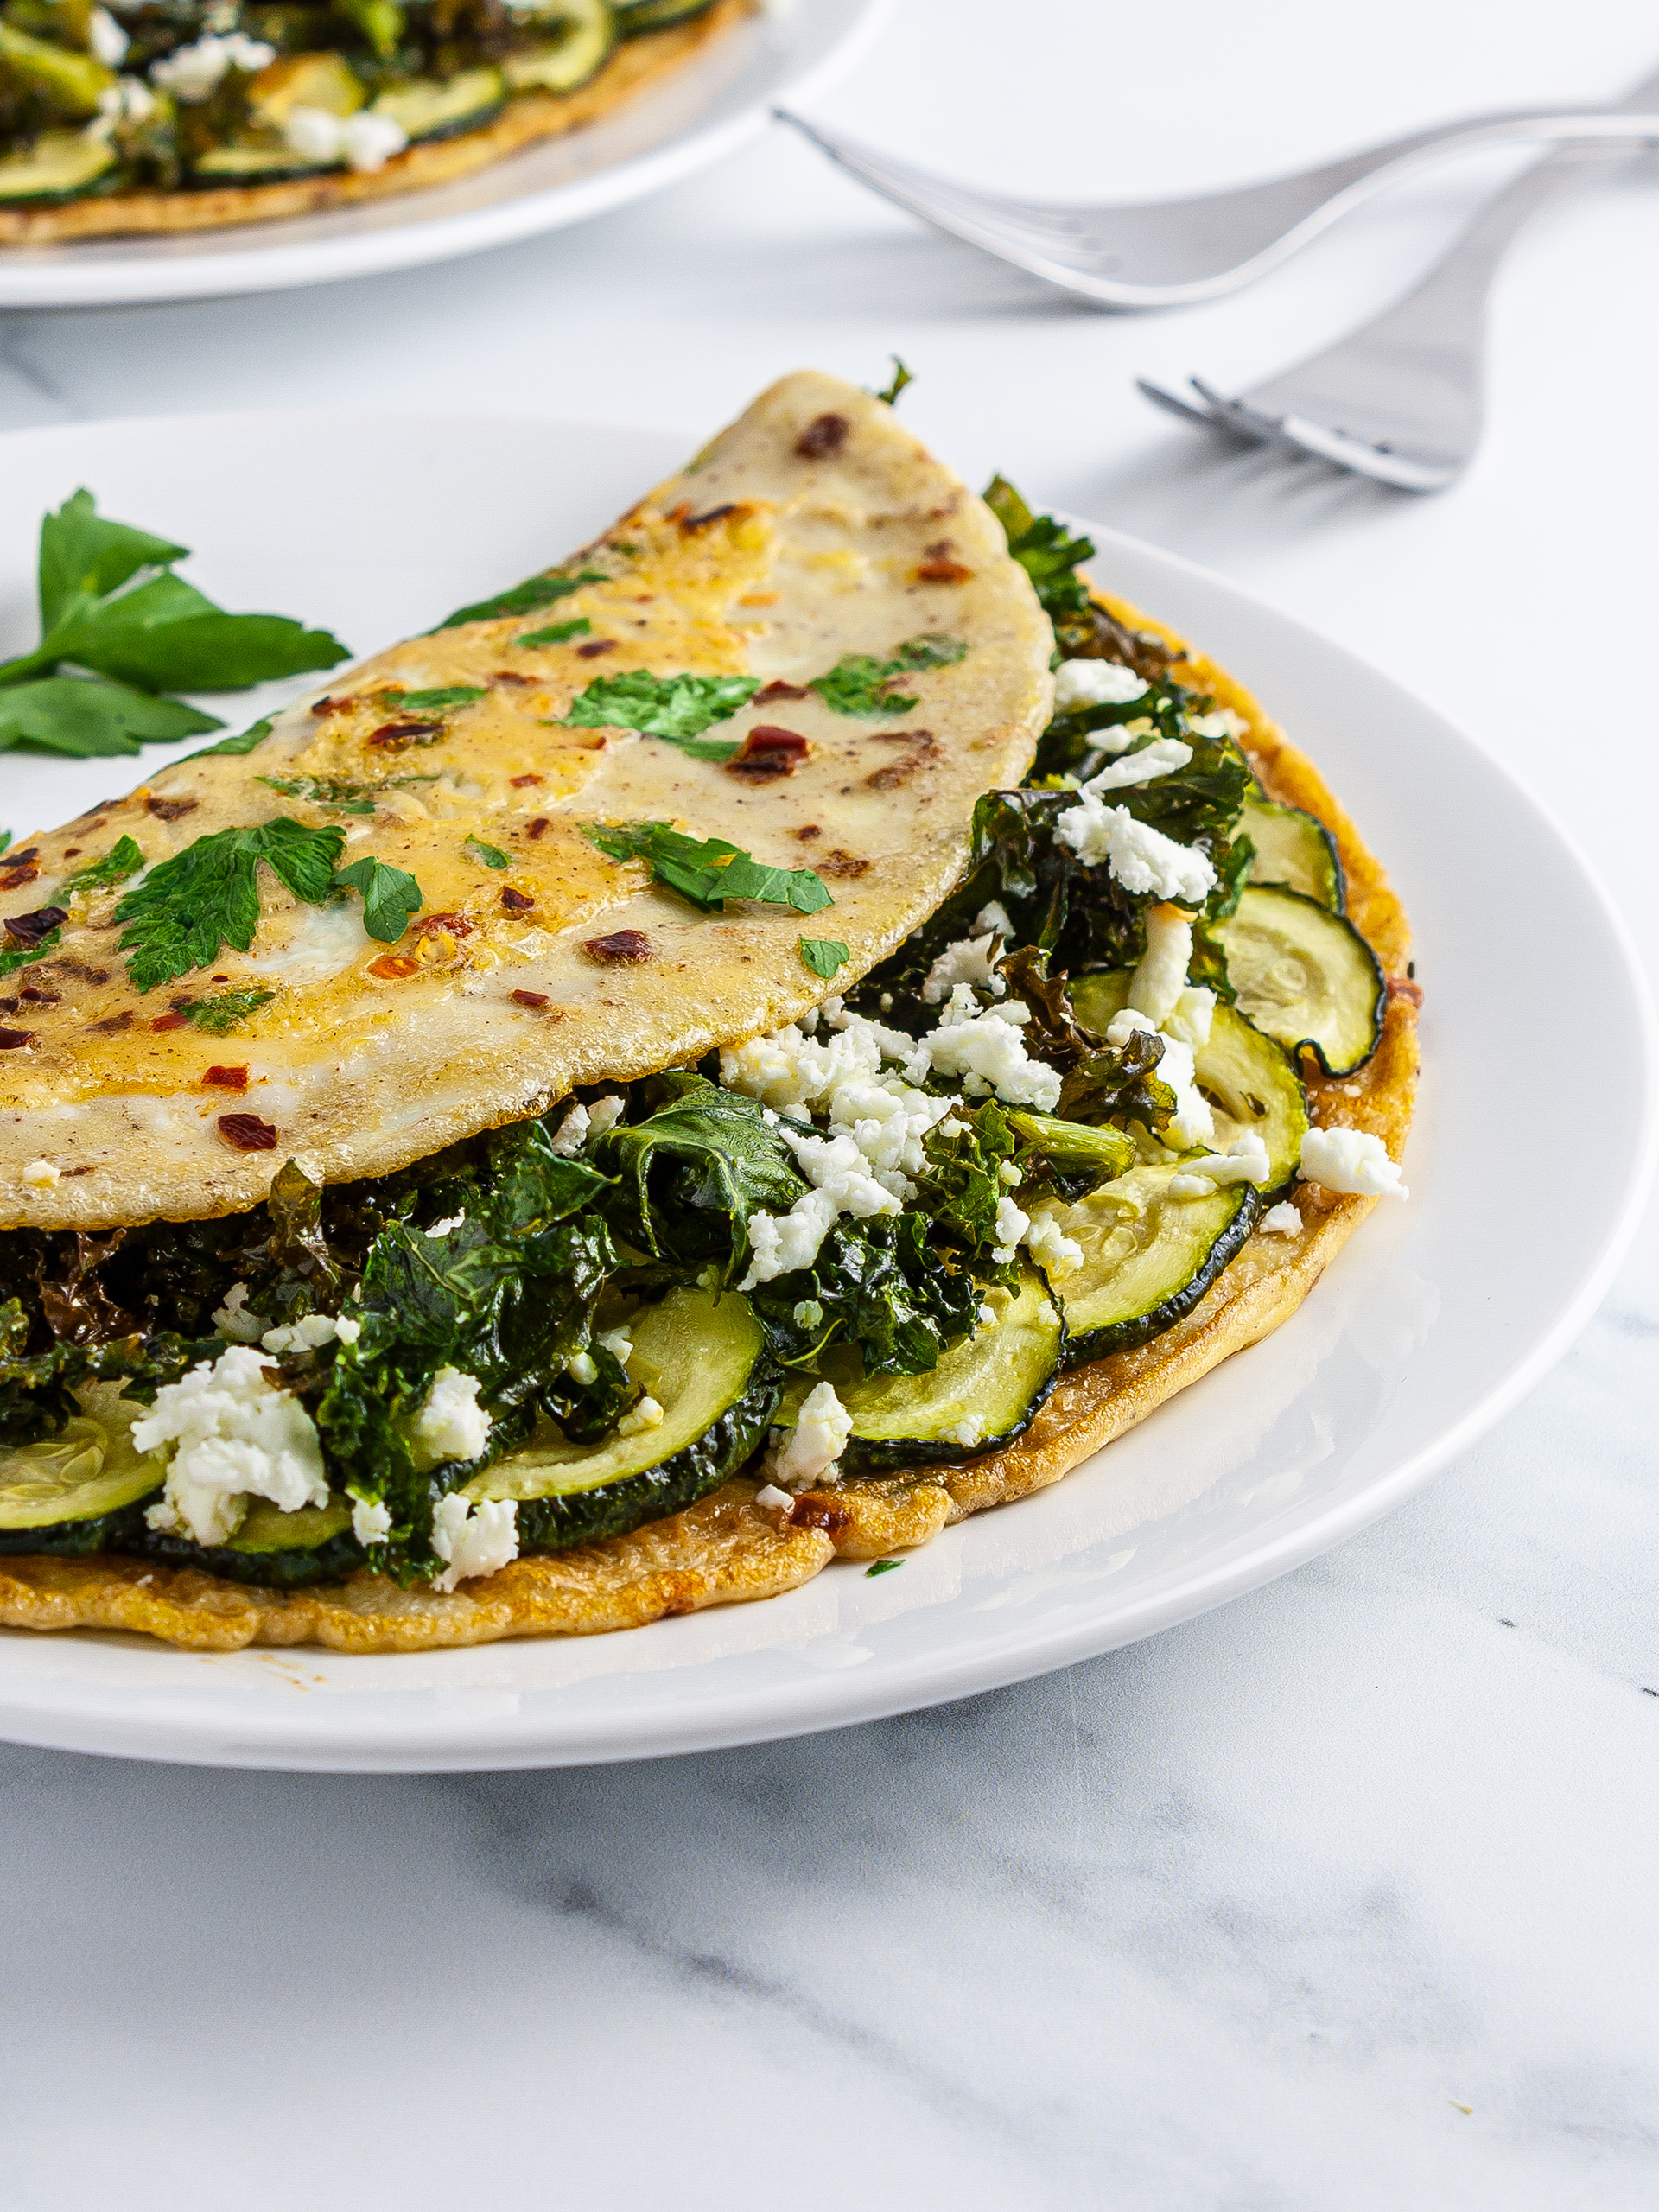 Kale Courgette and Feta Omelette Recipe Preview